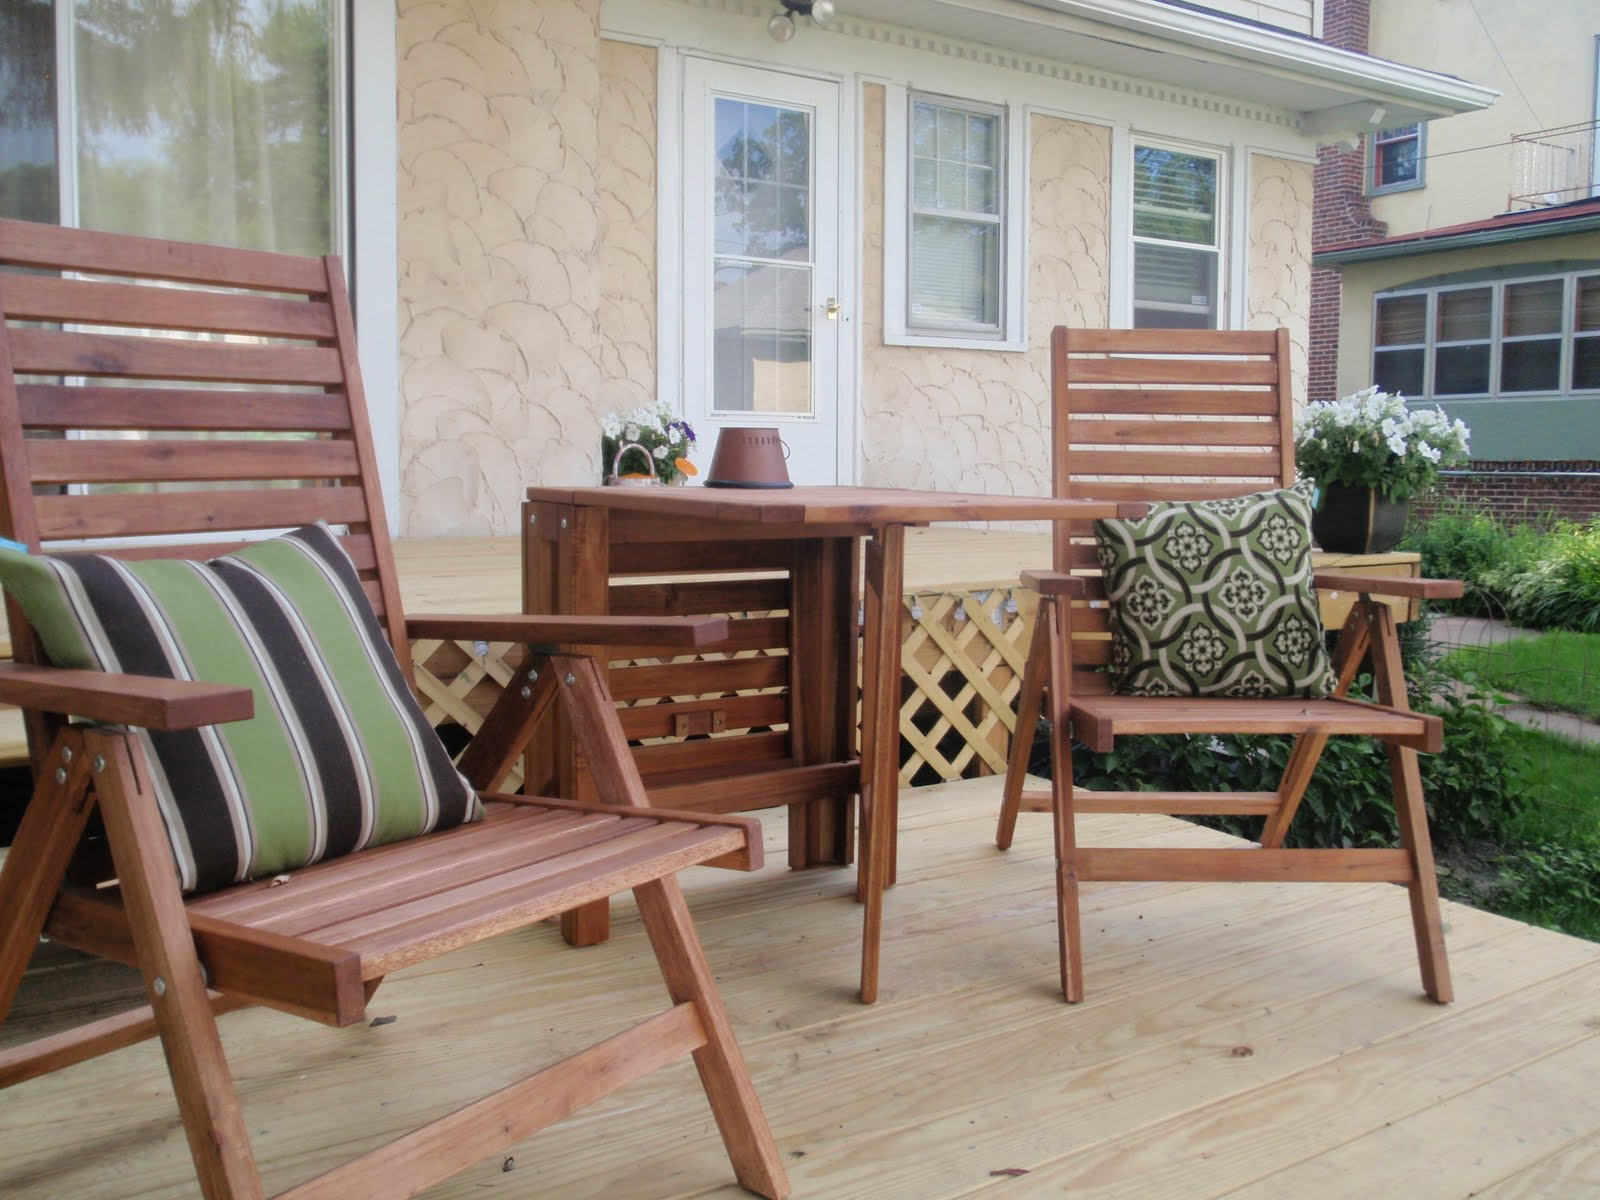 Patio furniture for balcony nrd homes.